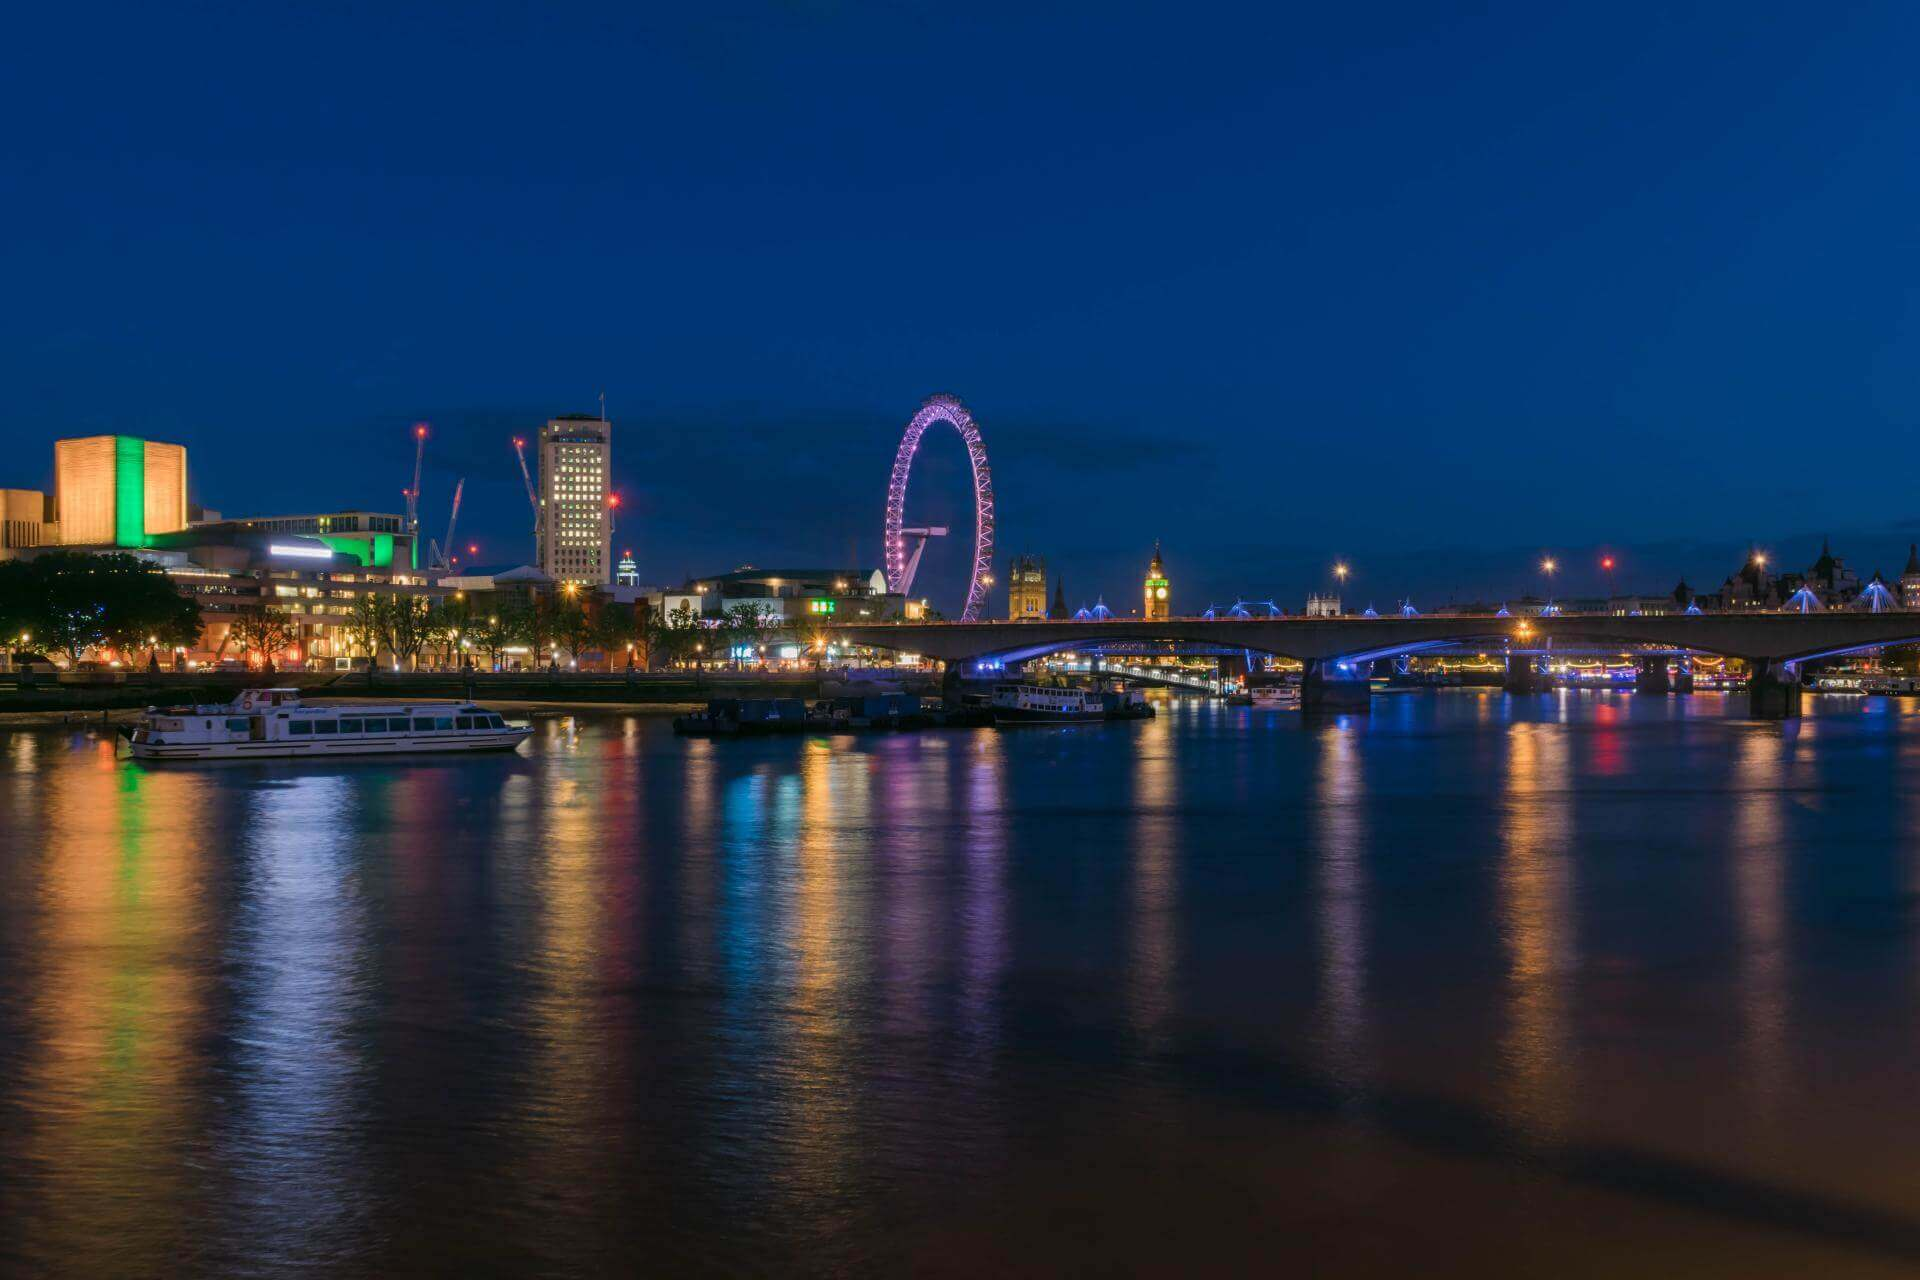 London at Night - London by the Thames at Nigh